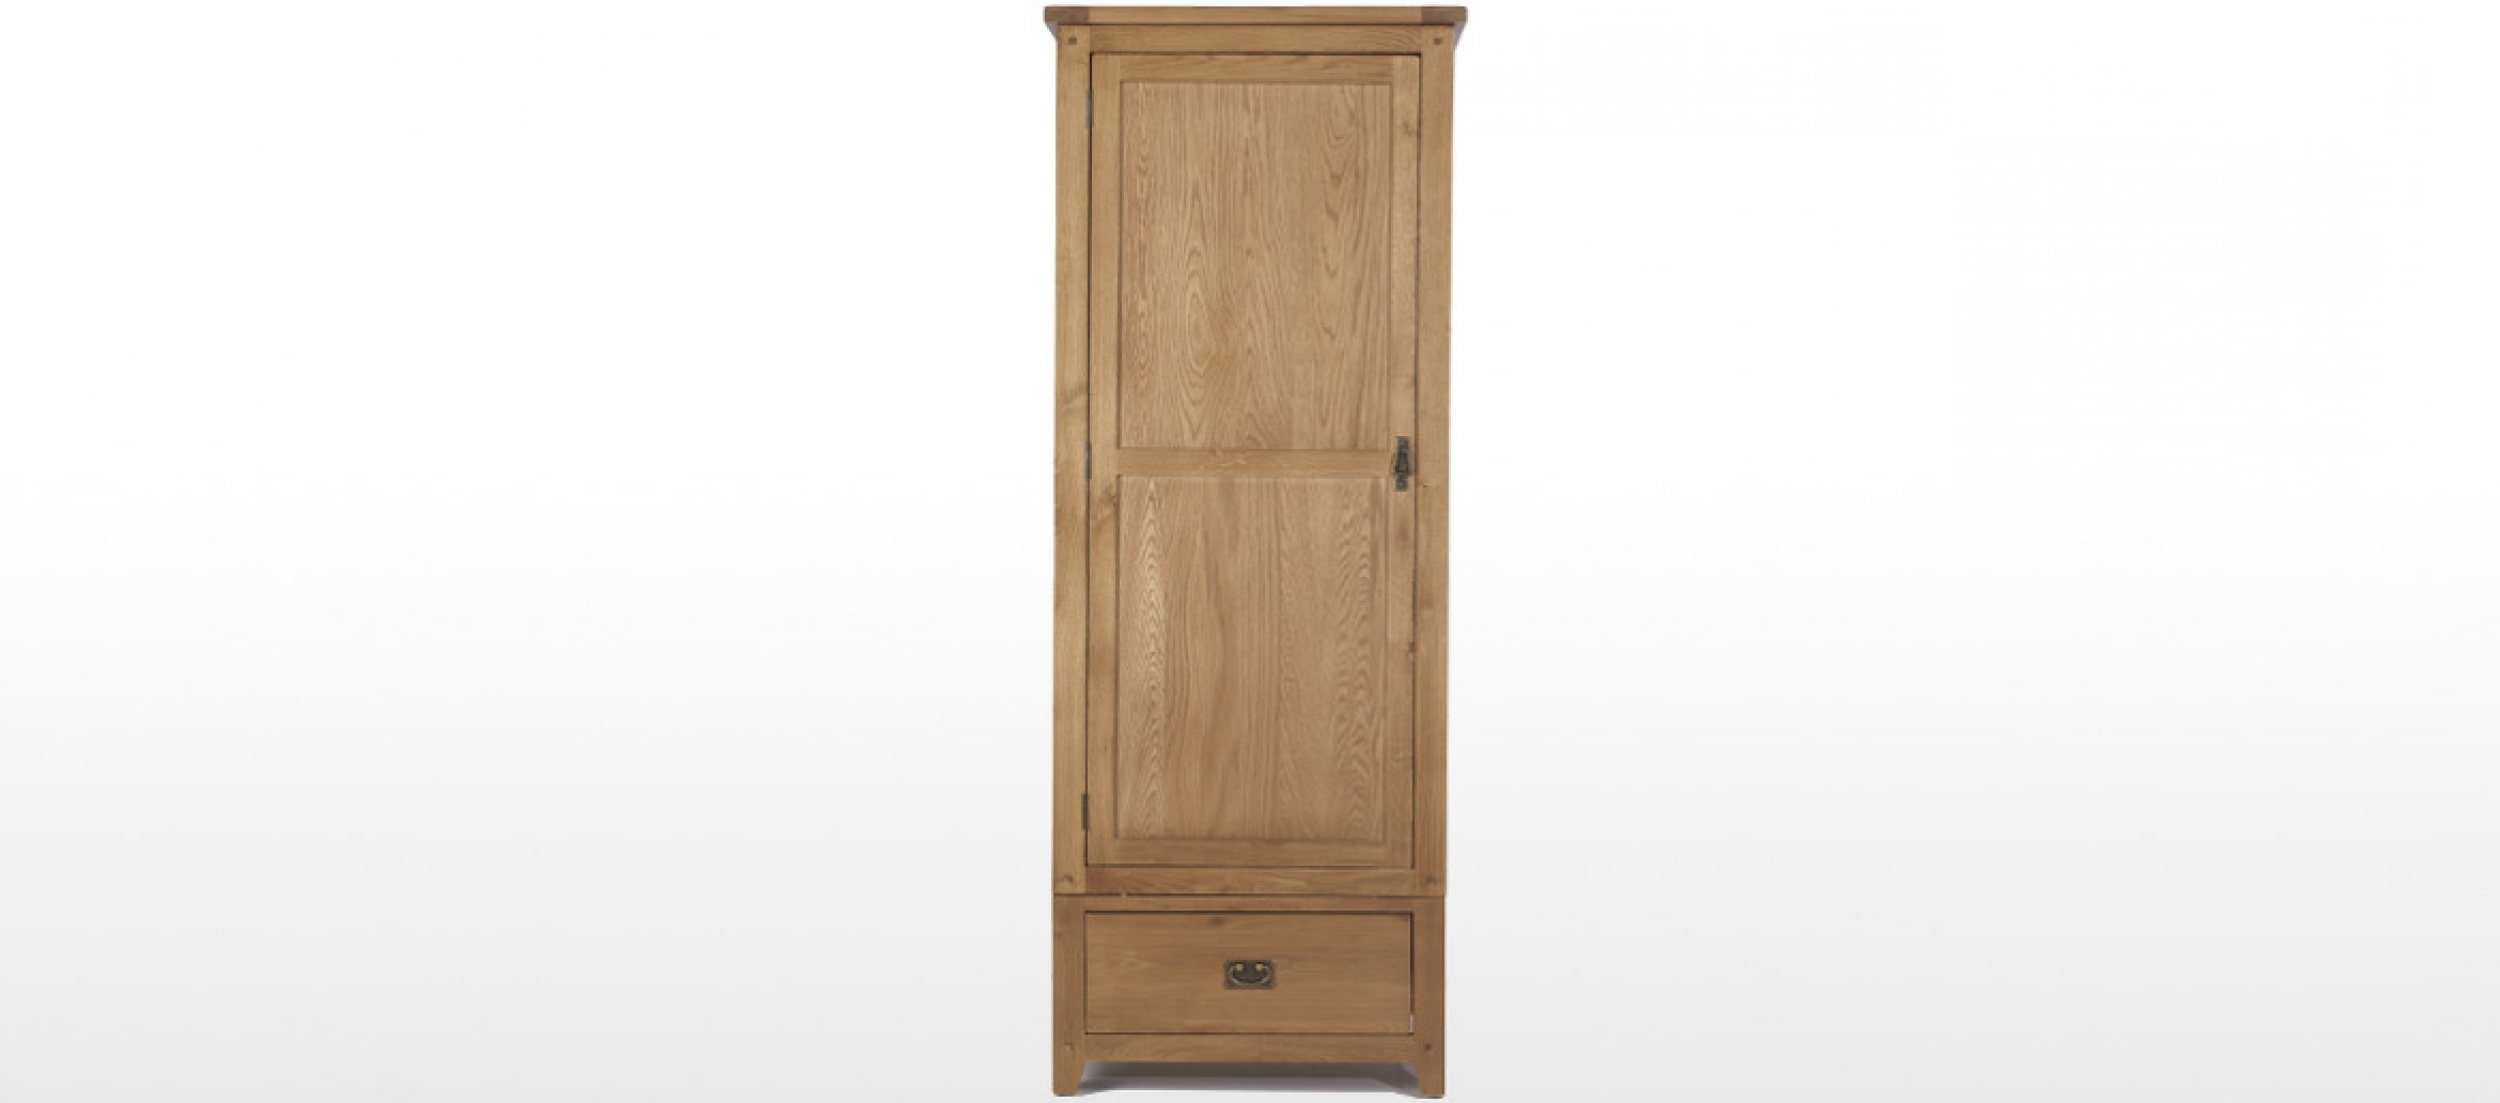 Most Recent Single Door Wardrobe With Drawers Ikea White Canvas This Is Best Throughout Single Oak Wardrobes With Drawers (View 6 of 15)